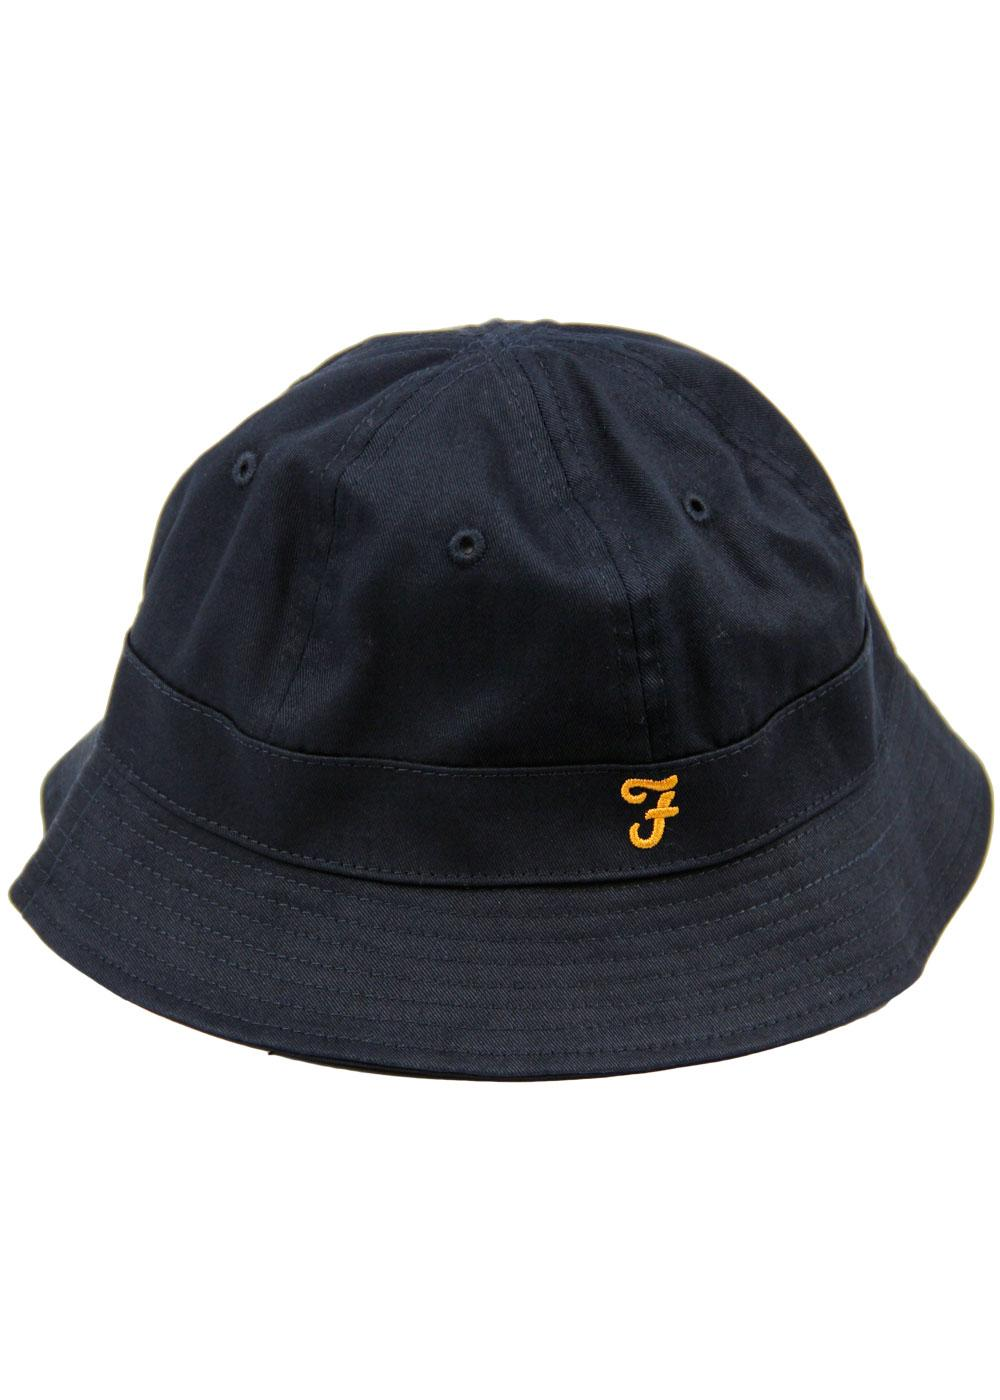 Charter FARAH Retro Indie Cotton Bucket Hat